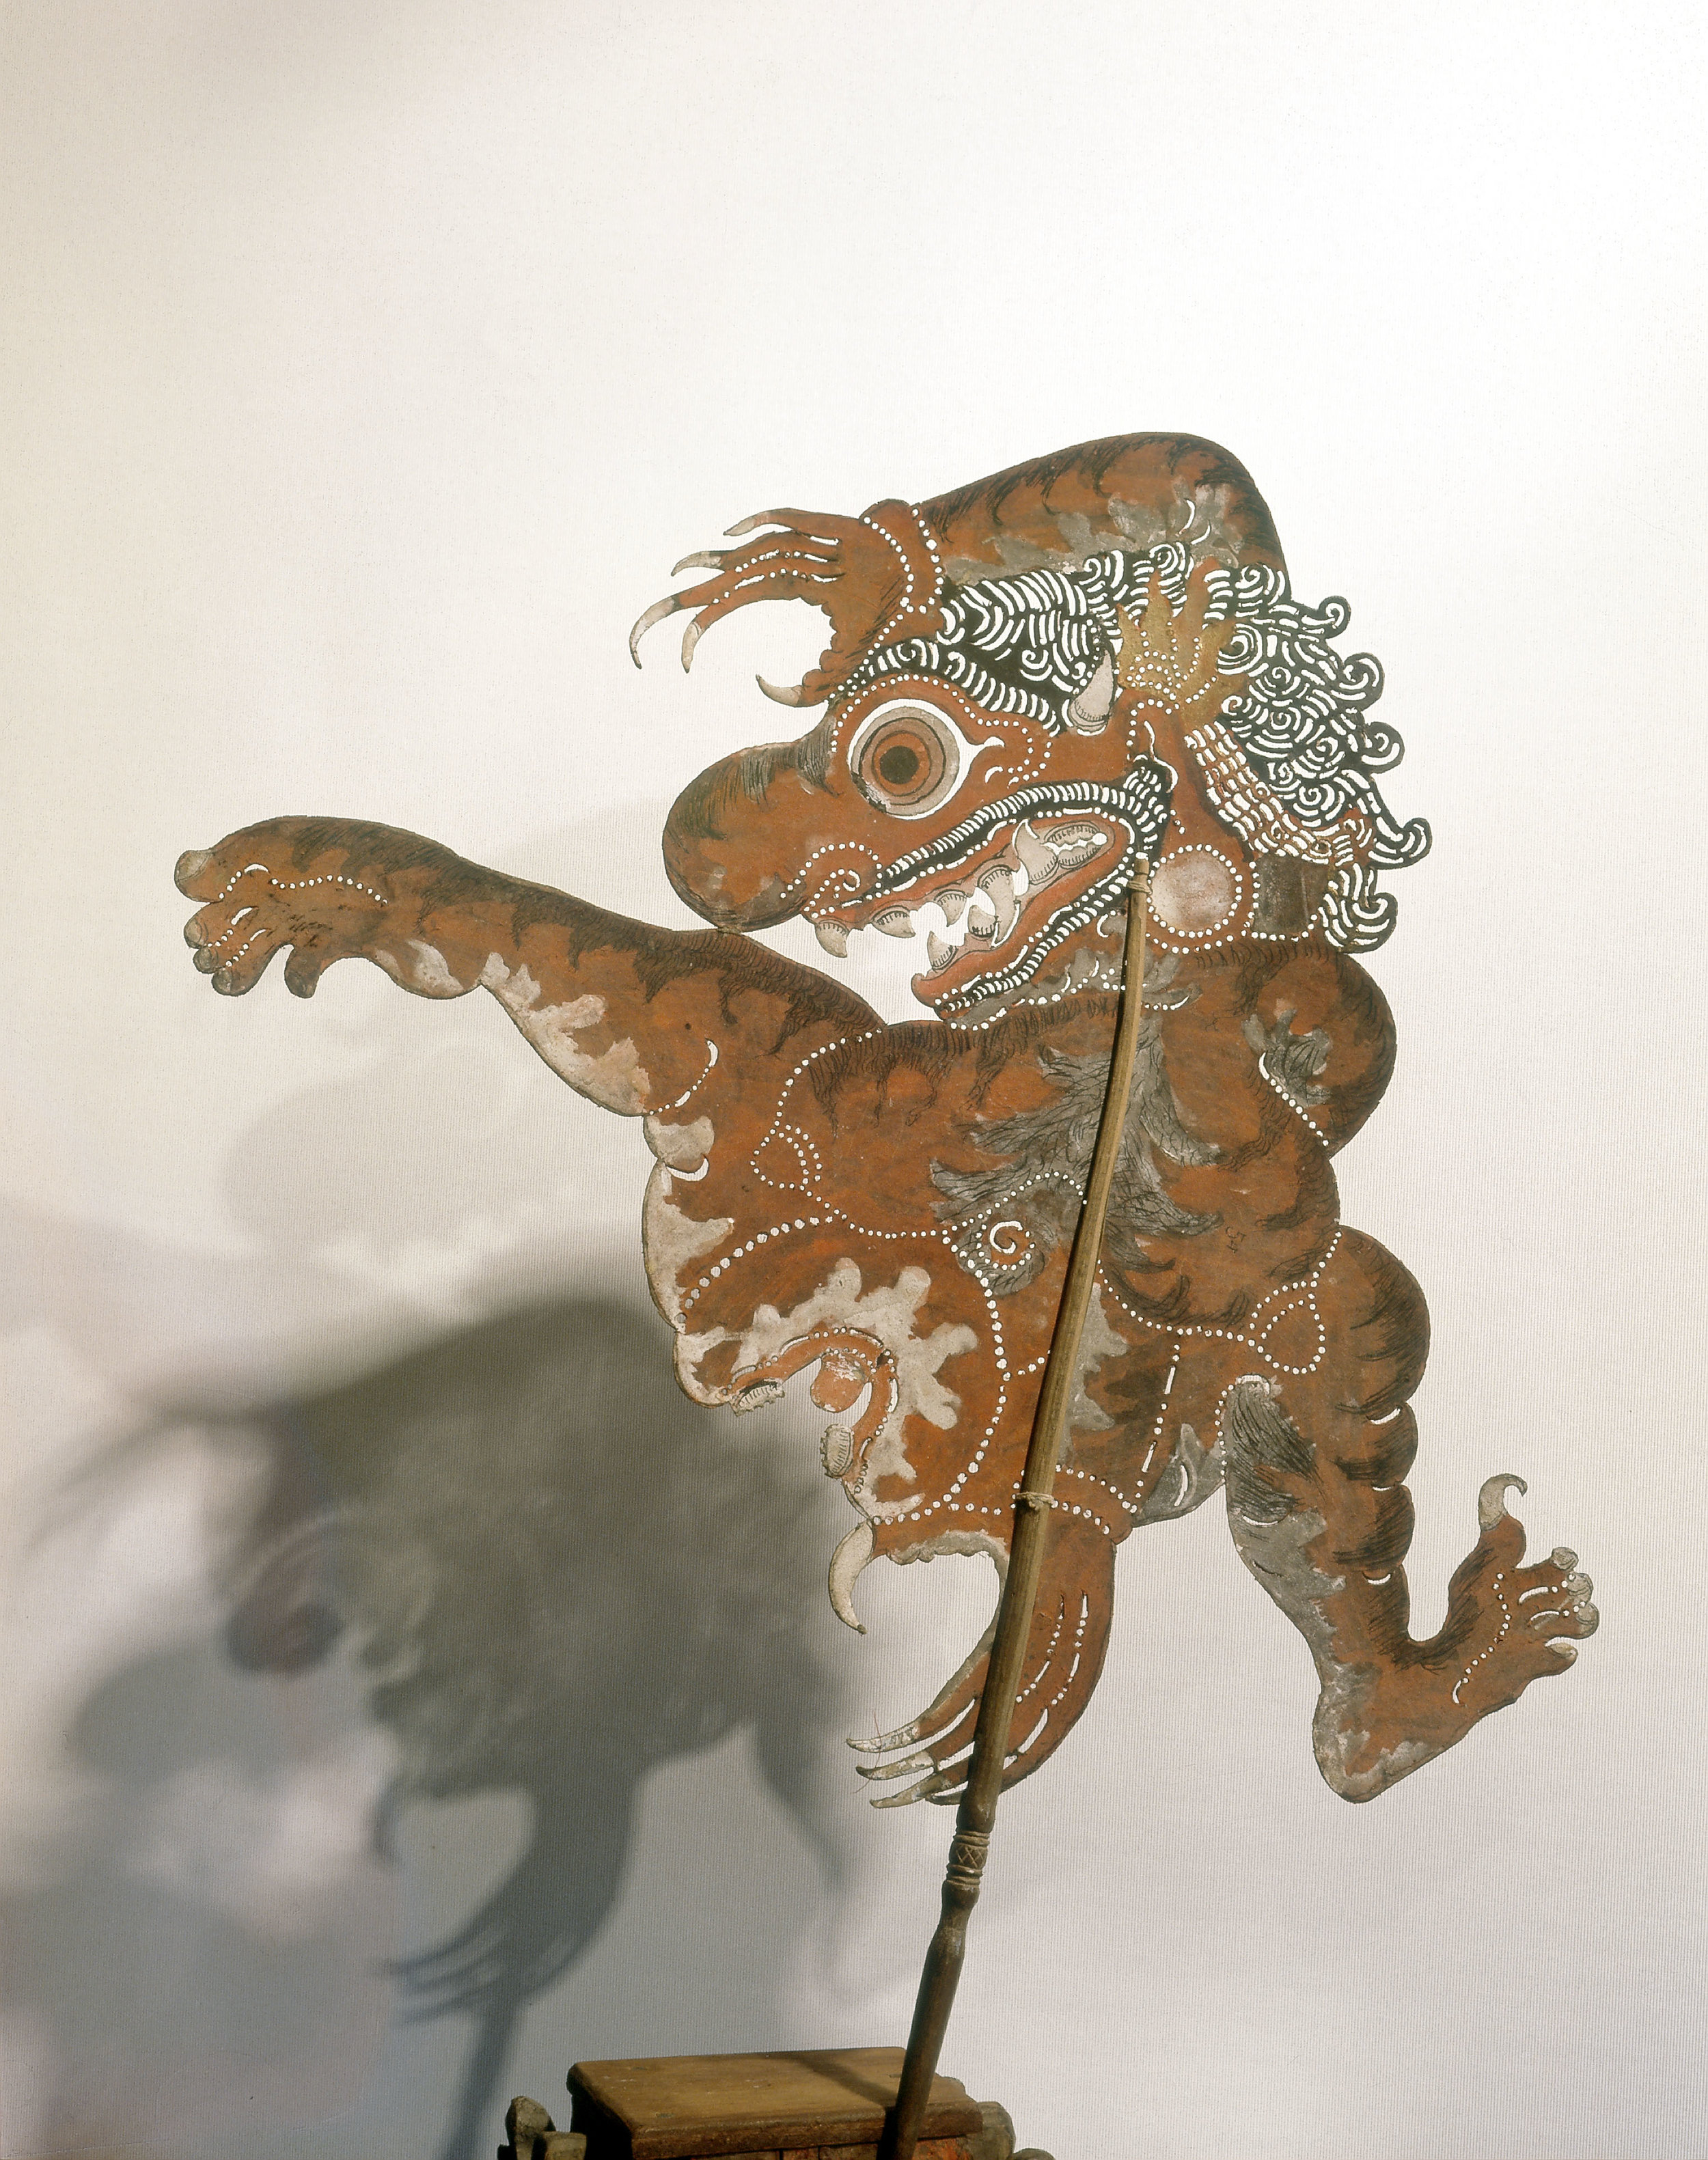 Wayang kulit shadow puppet used in popular all-night performances, usually based on ancient Hindu epics such as the Ramayana. Country of Origin: Indonesia. Culture: Javanese. Date/Period: c.1900. Place of Origin: Java. Material Size: Leather, wood, paint. Credit Line: Werner Forman Archive/Private Collection.